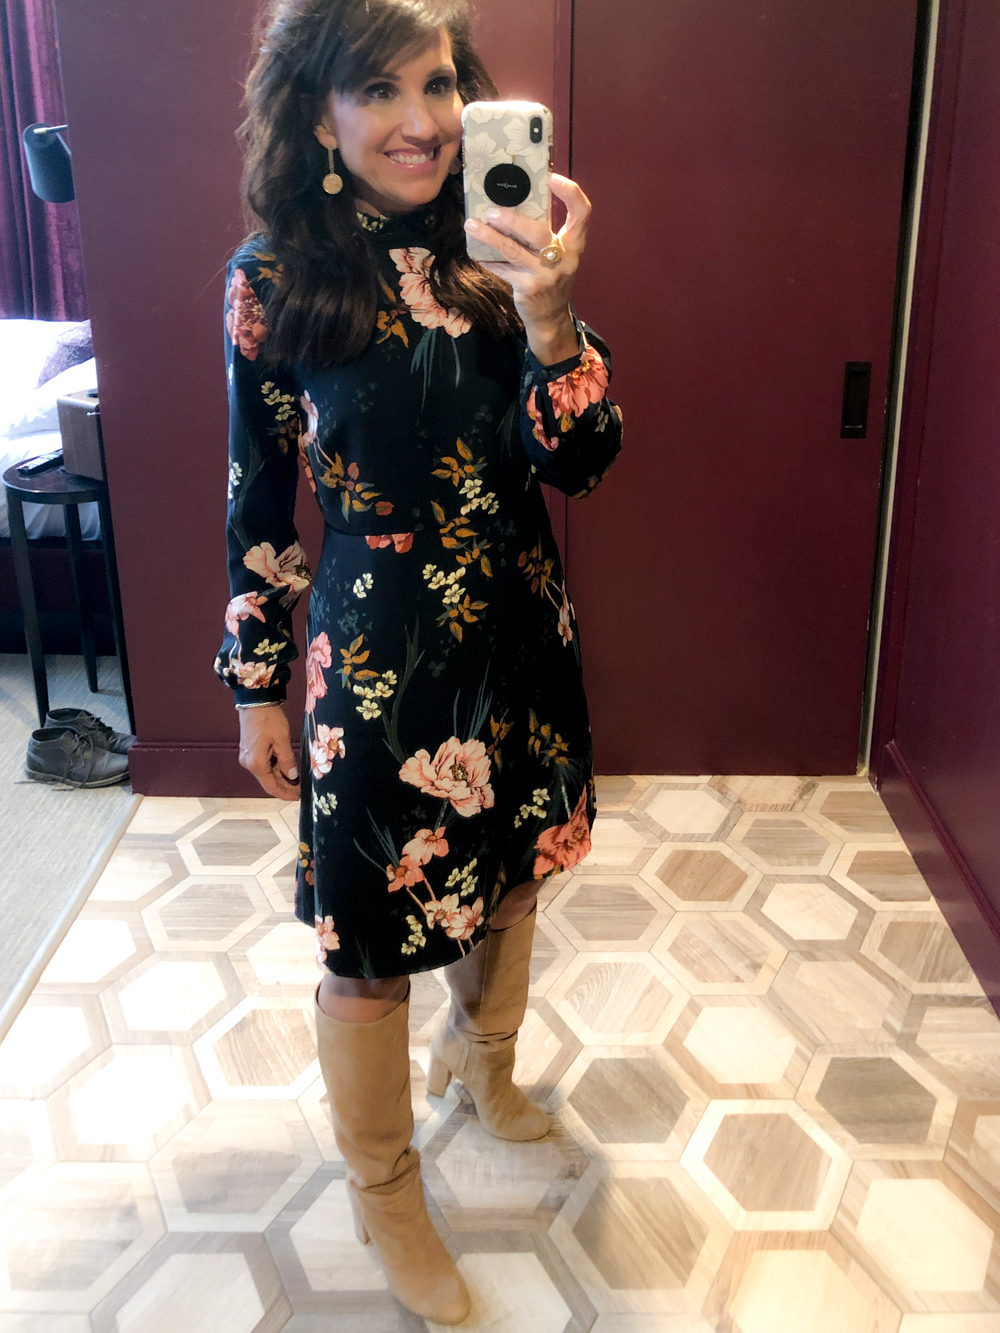 Floral Shift Dress from Amazon